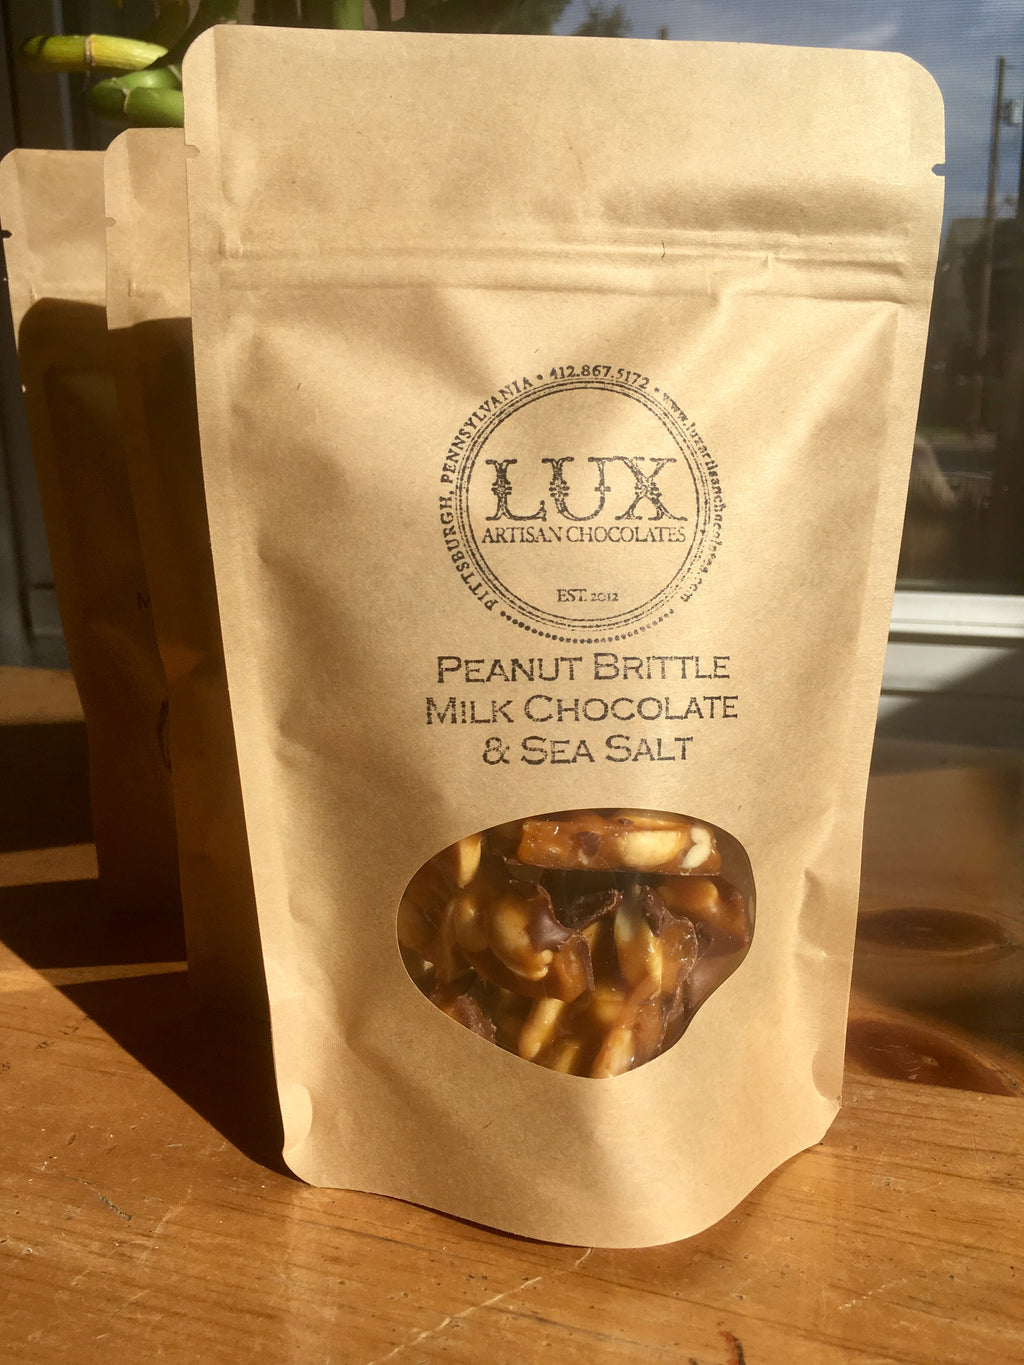 Peanut Brittle - Quarter Pound Bag (Milk Chocolate)